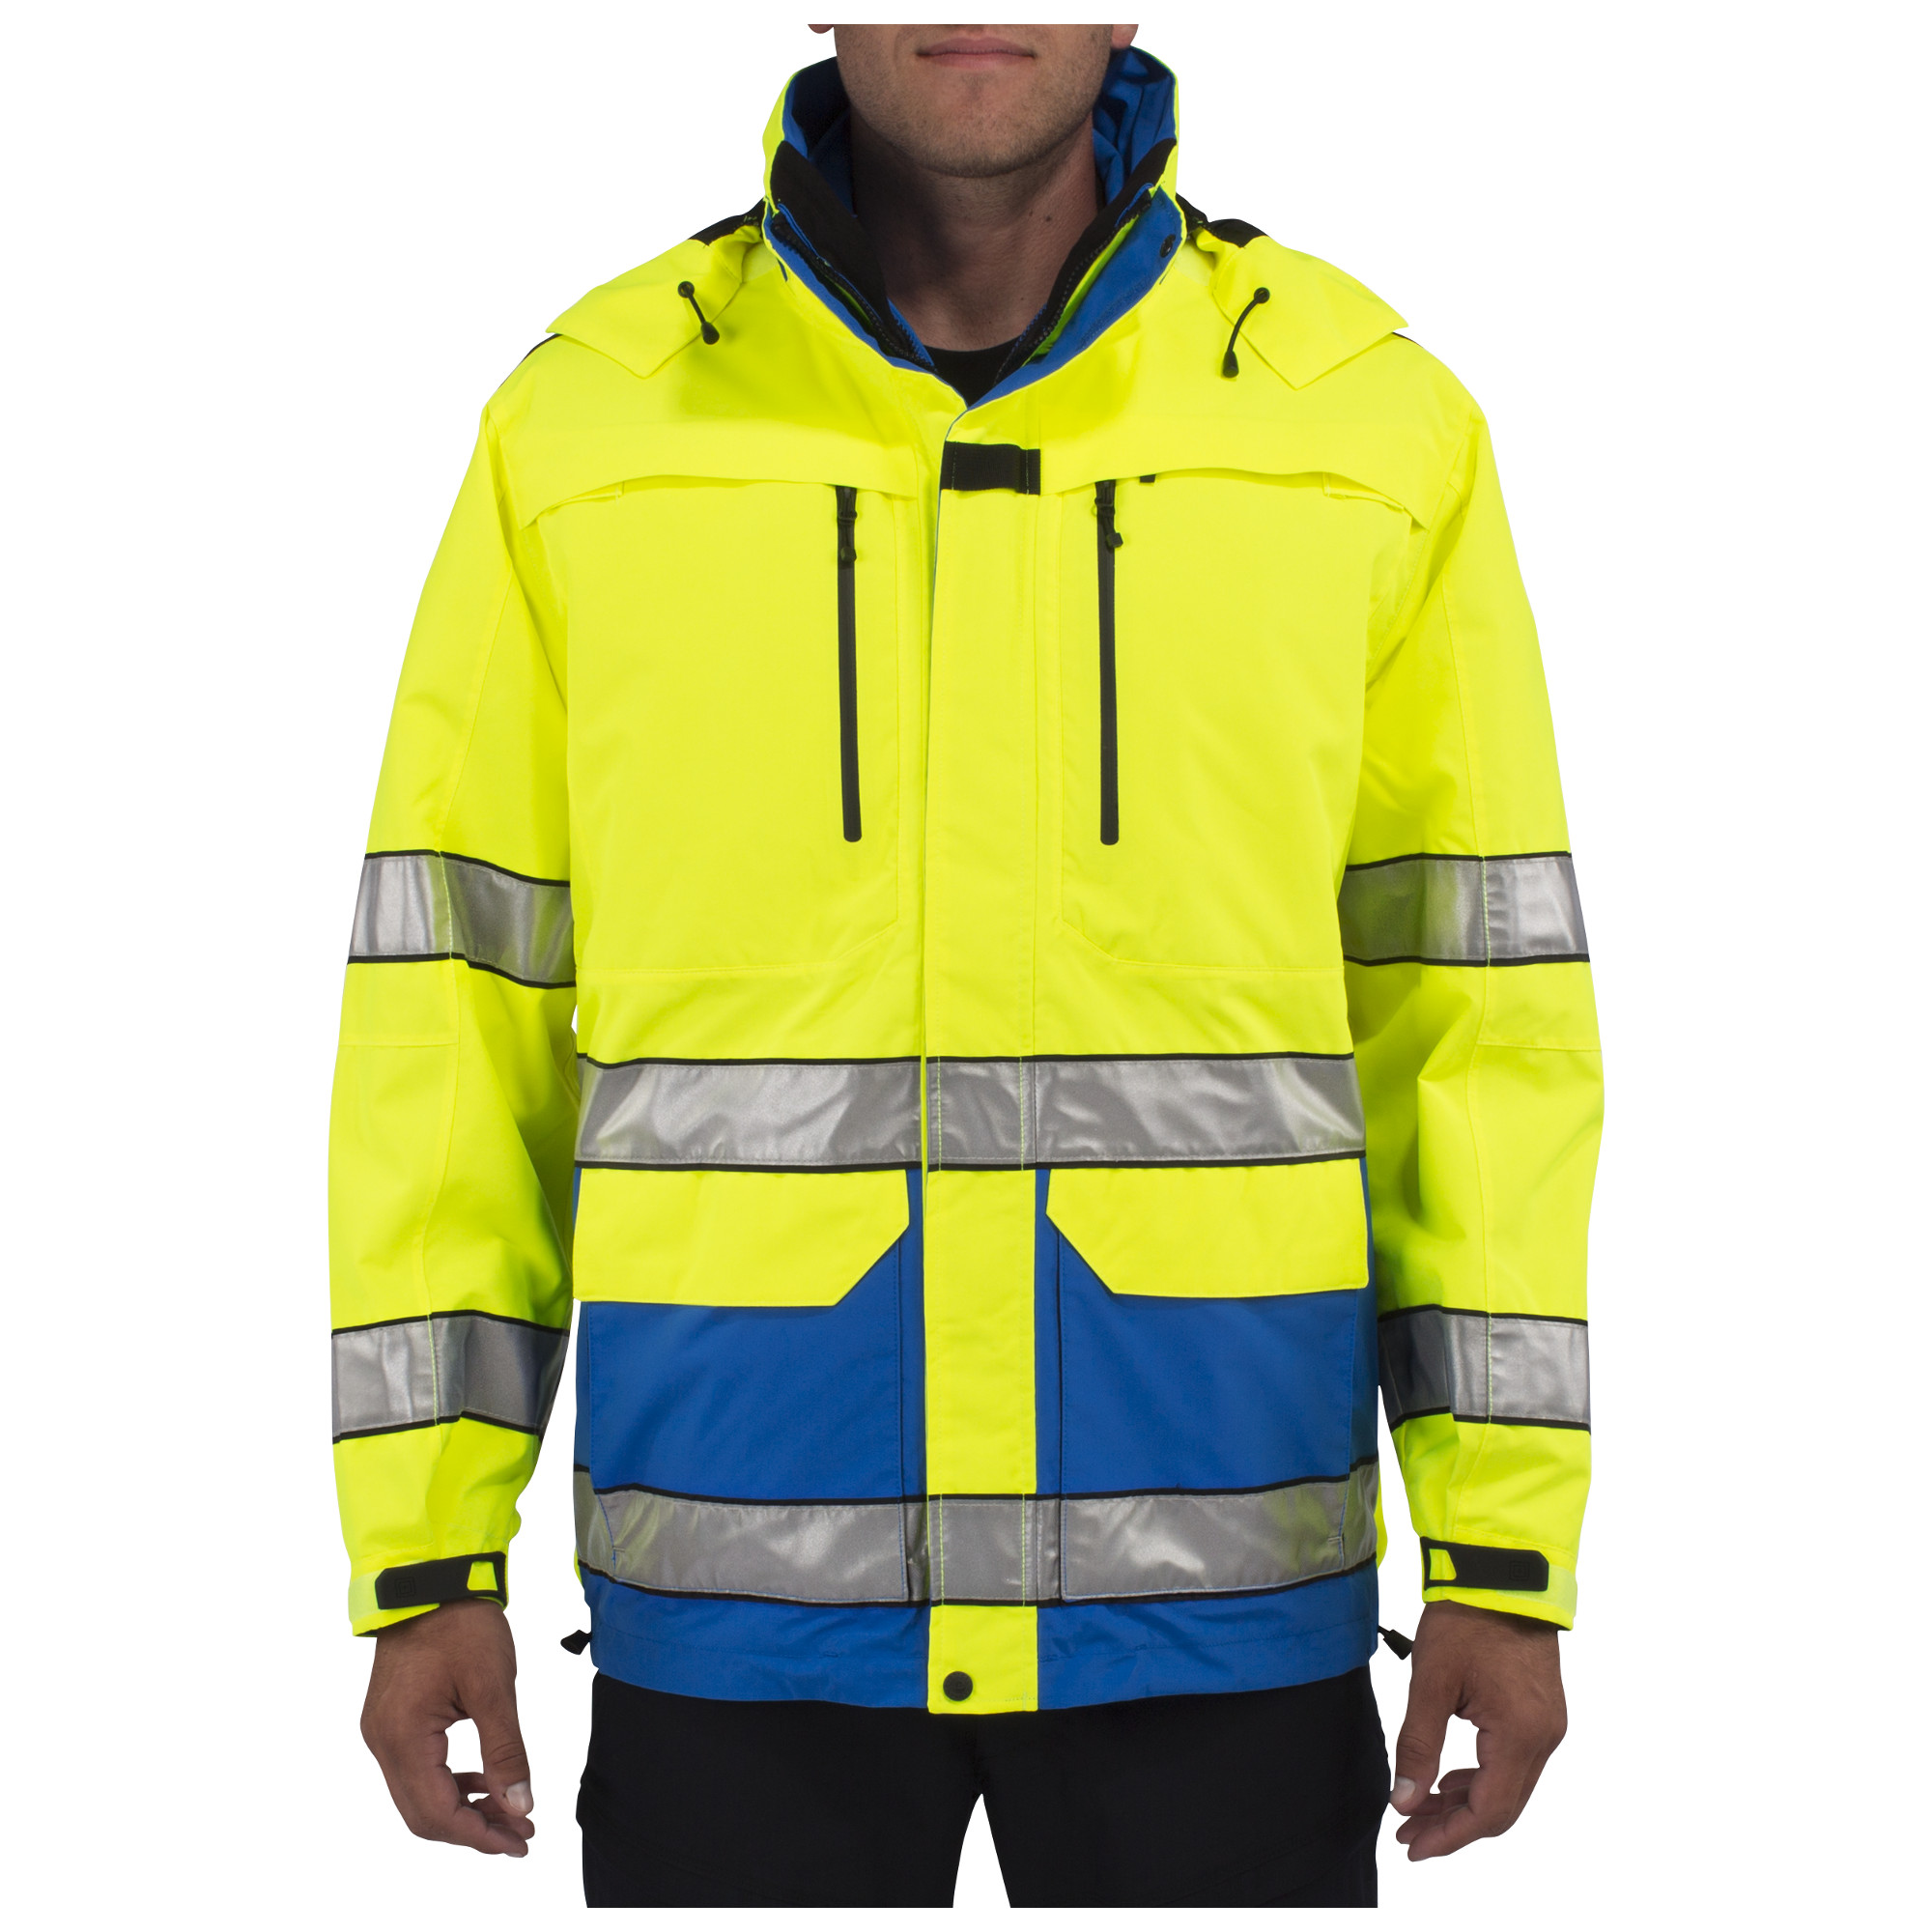 5.11 Tactical Men's First Responder High Visibility Jacket (Blue;Yellow)